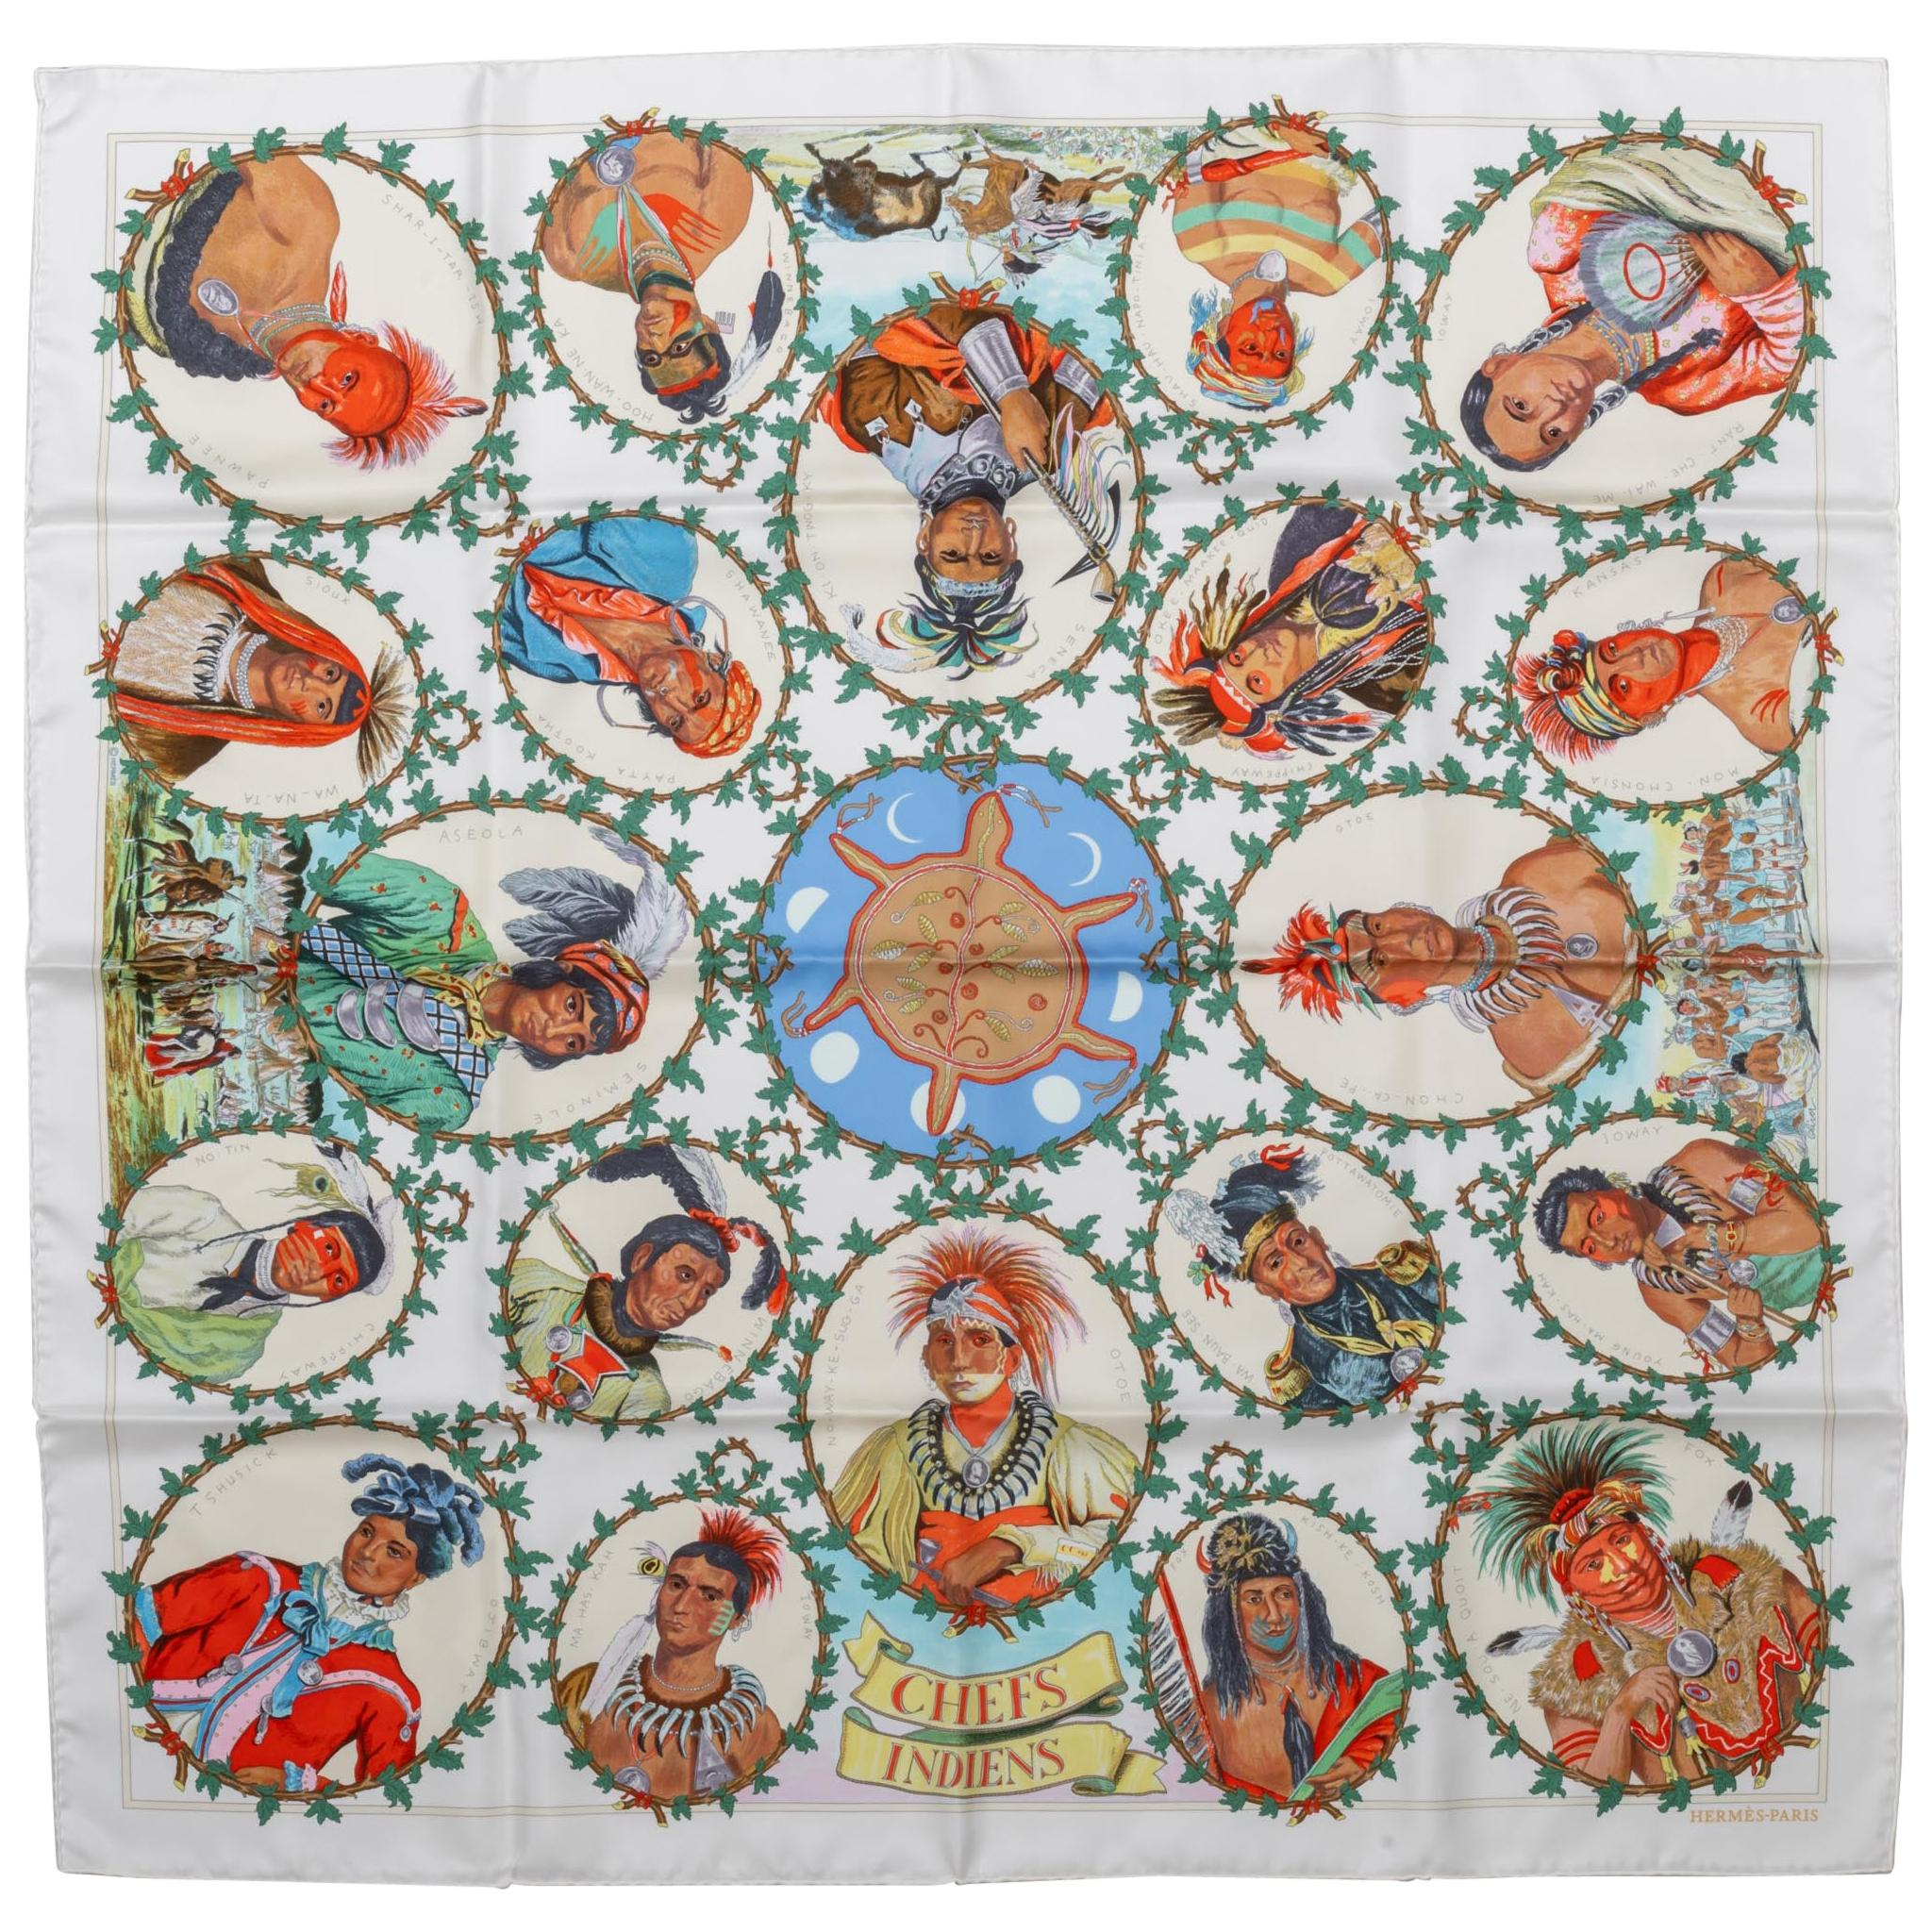 New Limited Edition Hermès Chefs Indiens Scarf by Oliver